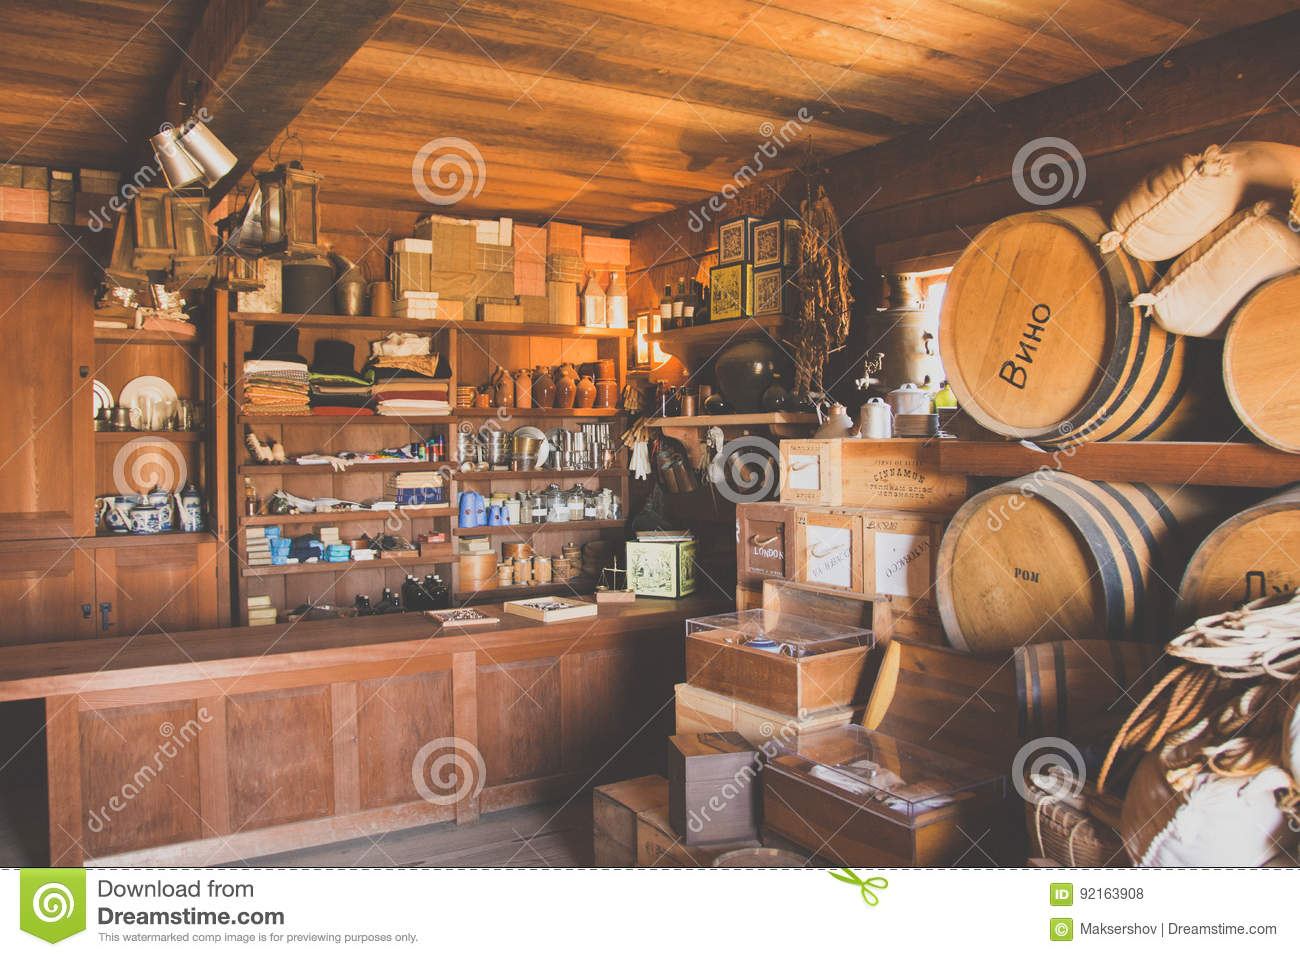 California, USA - June 17, 2015: An old shop in the wild west in California